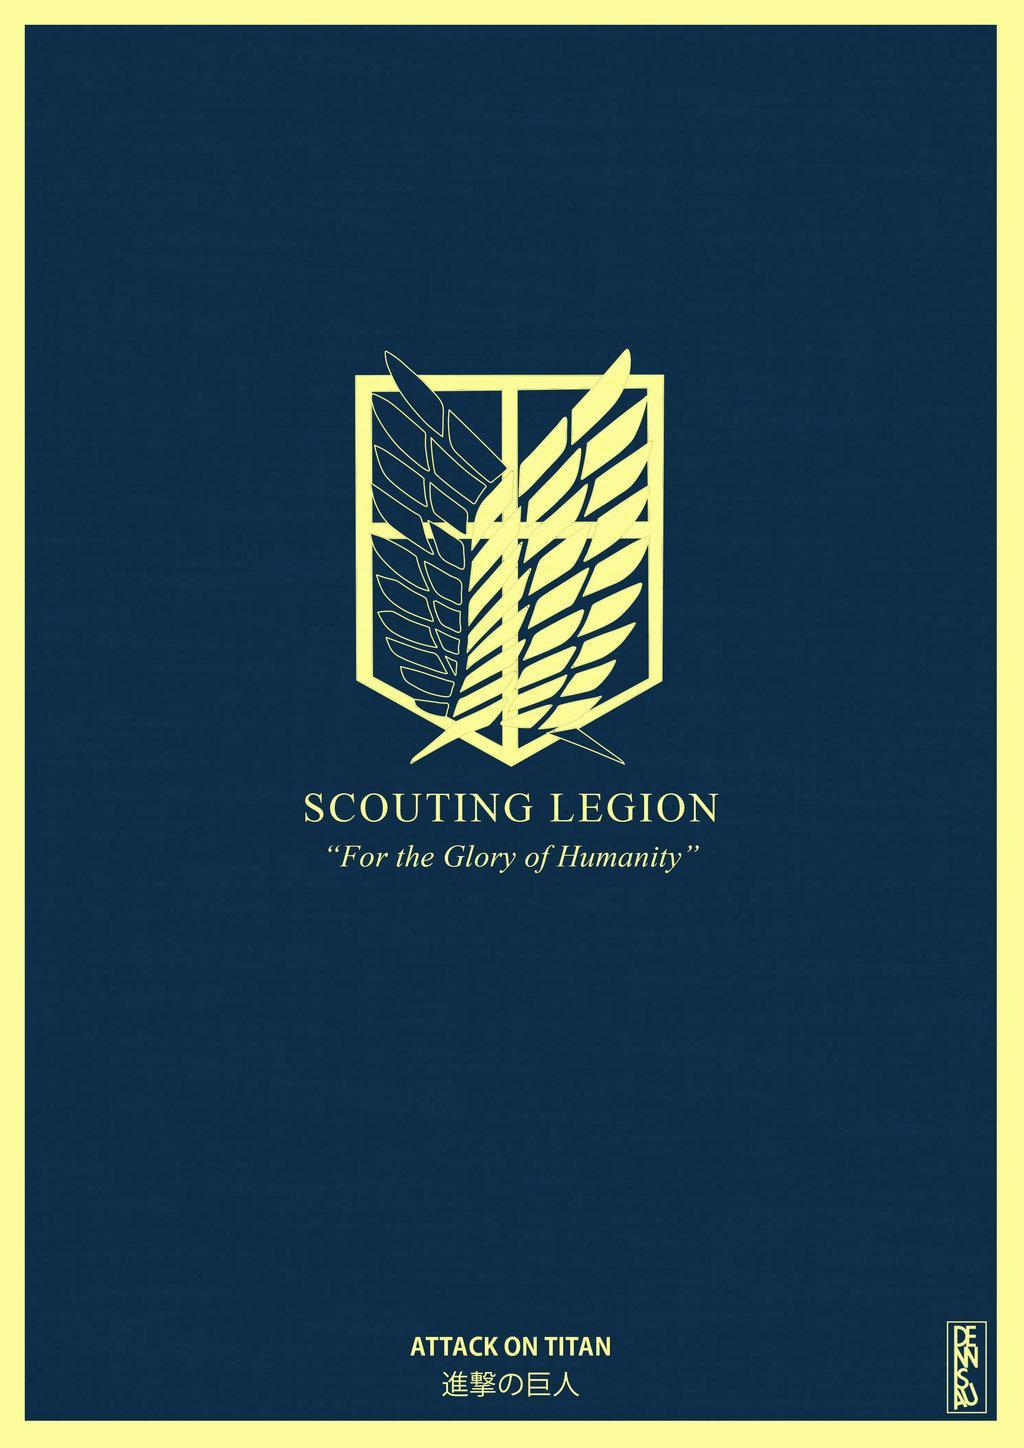 Recon Corps/Survey Corps/Scouting legion